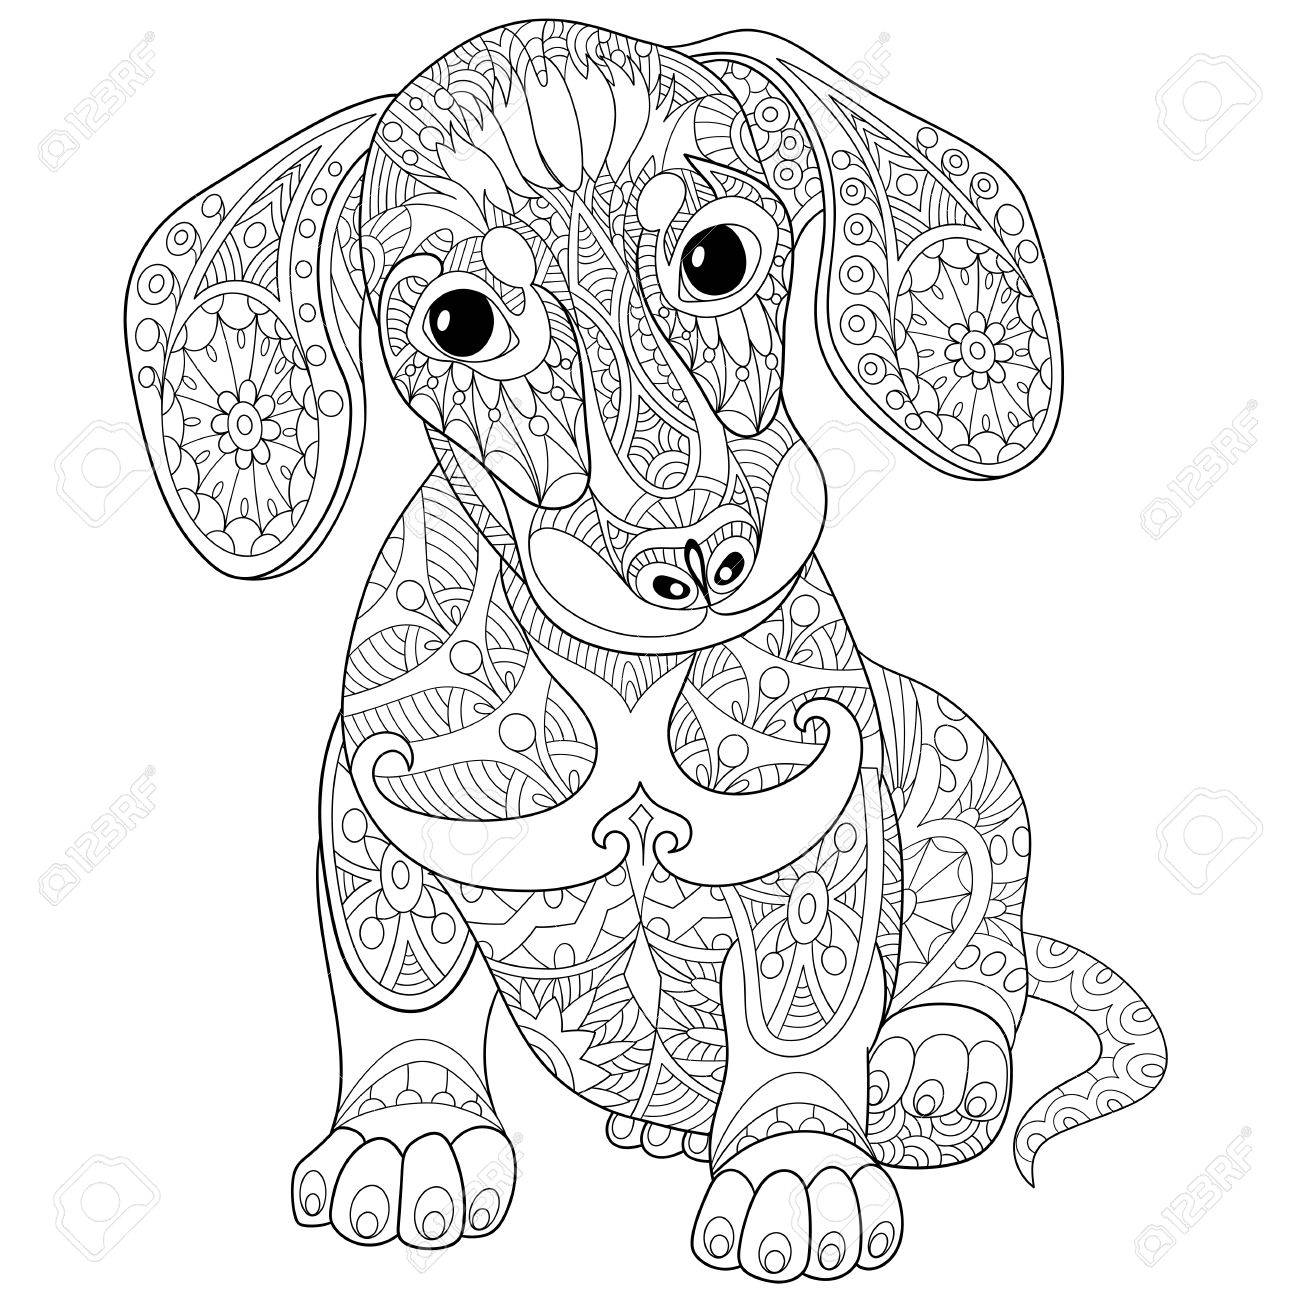 Dachshund Line Drawing At Getdrawings